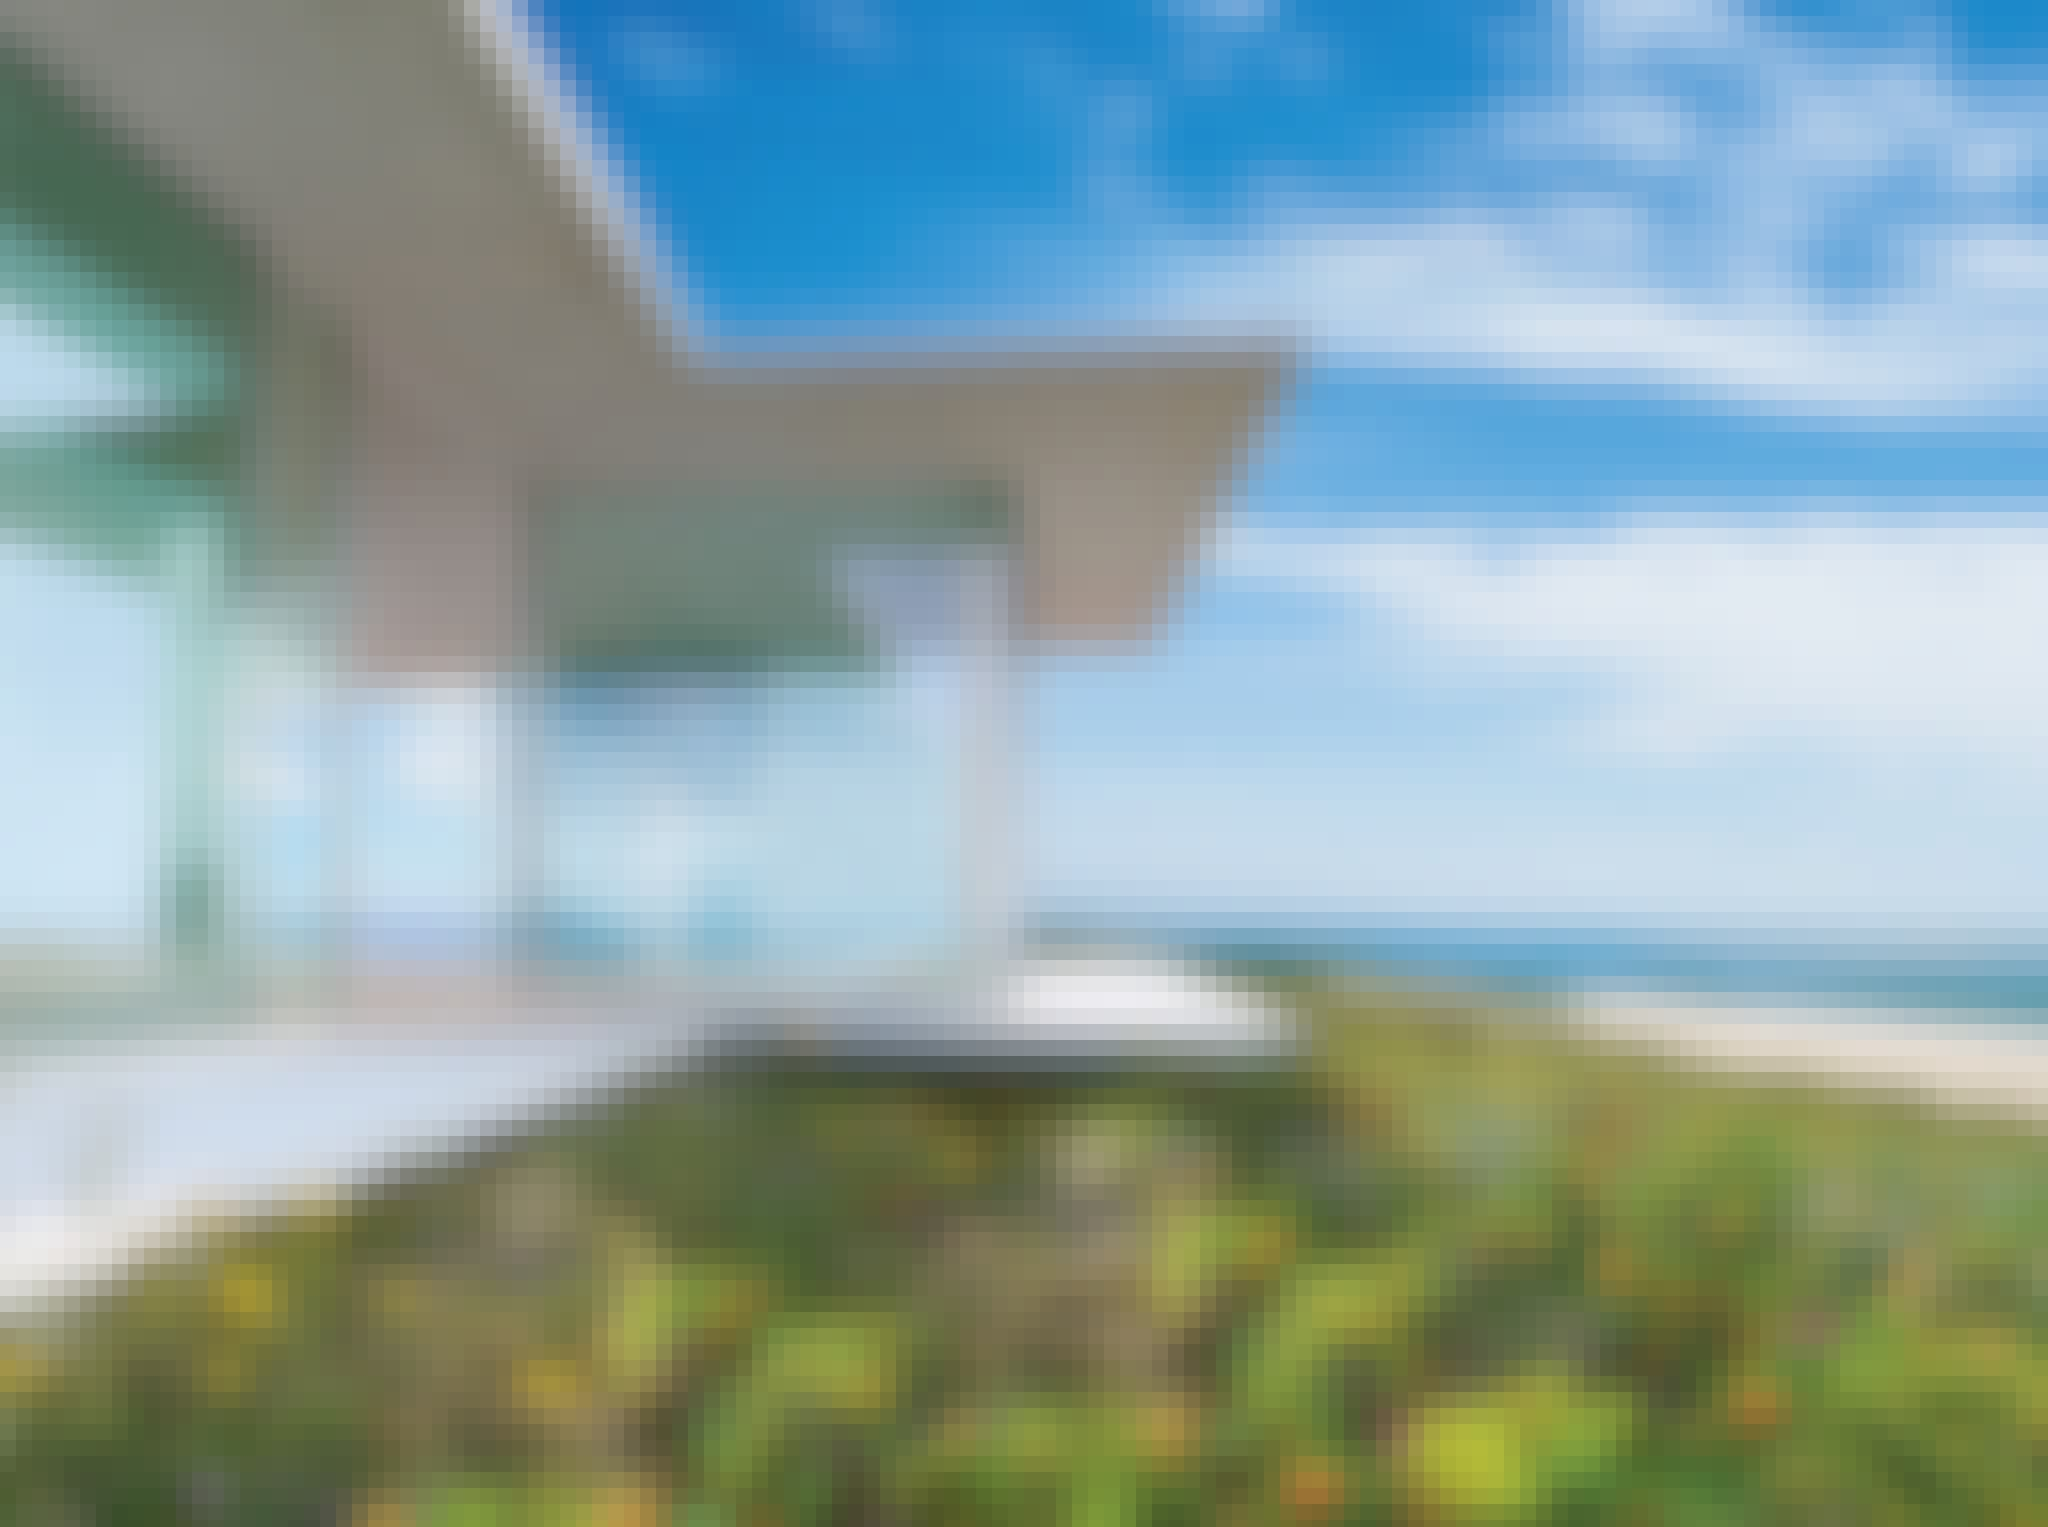 residential glass walls in must see beach house